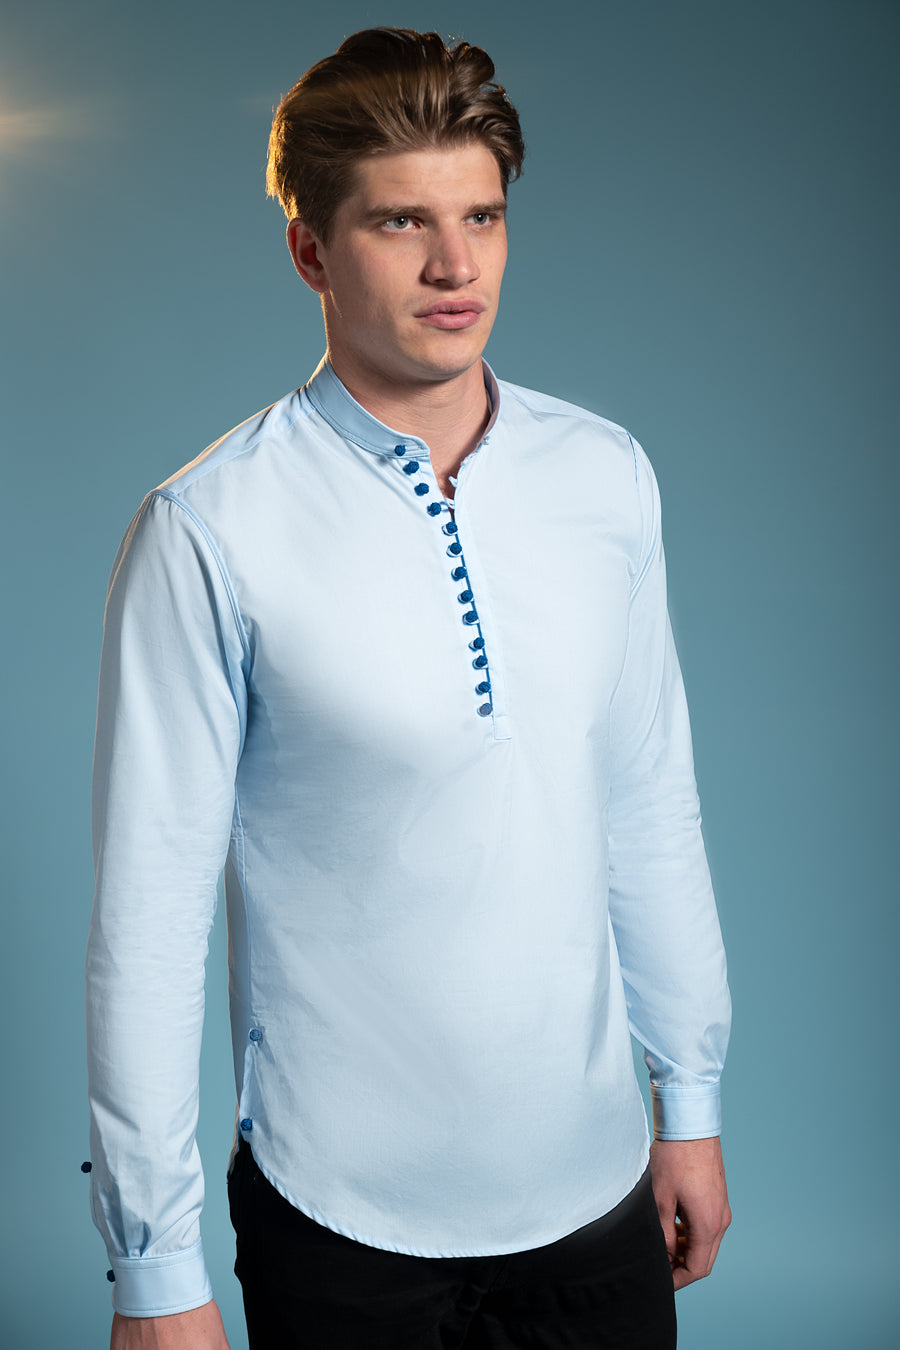 WATERSMART COLLABORATION SHIRT